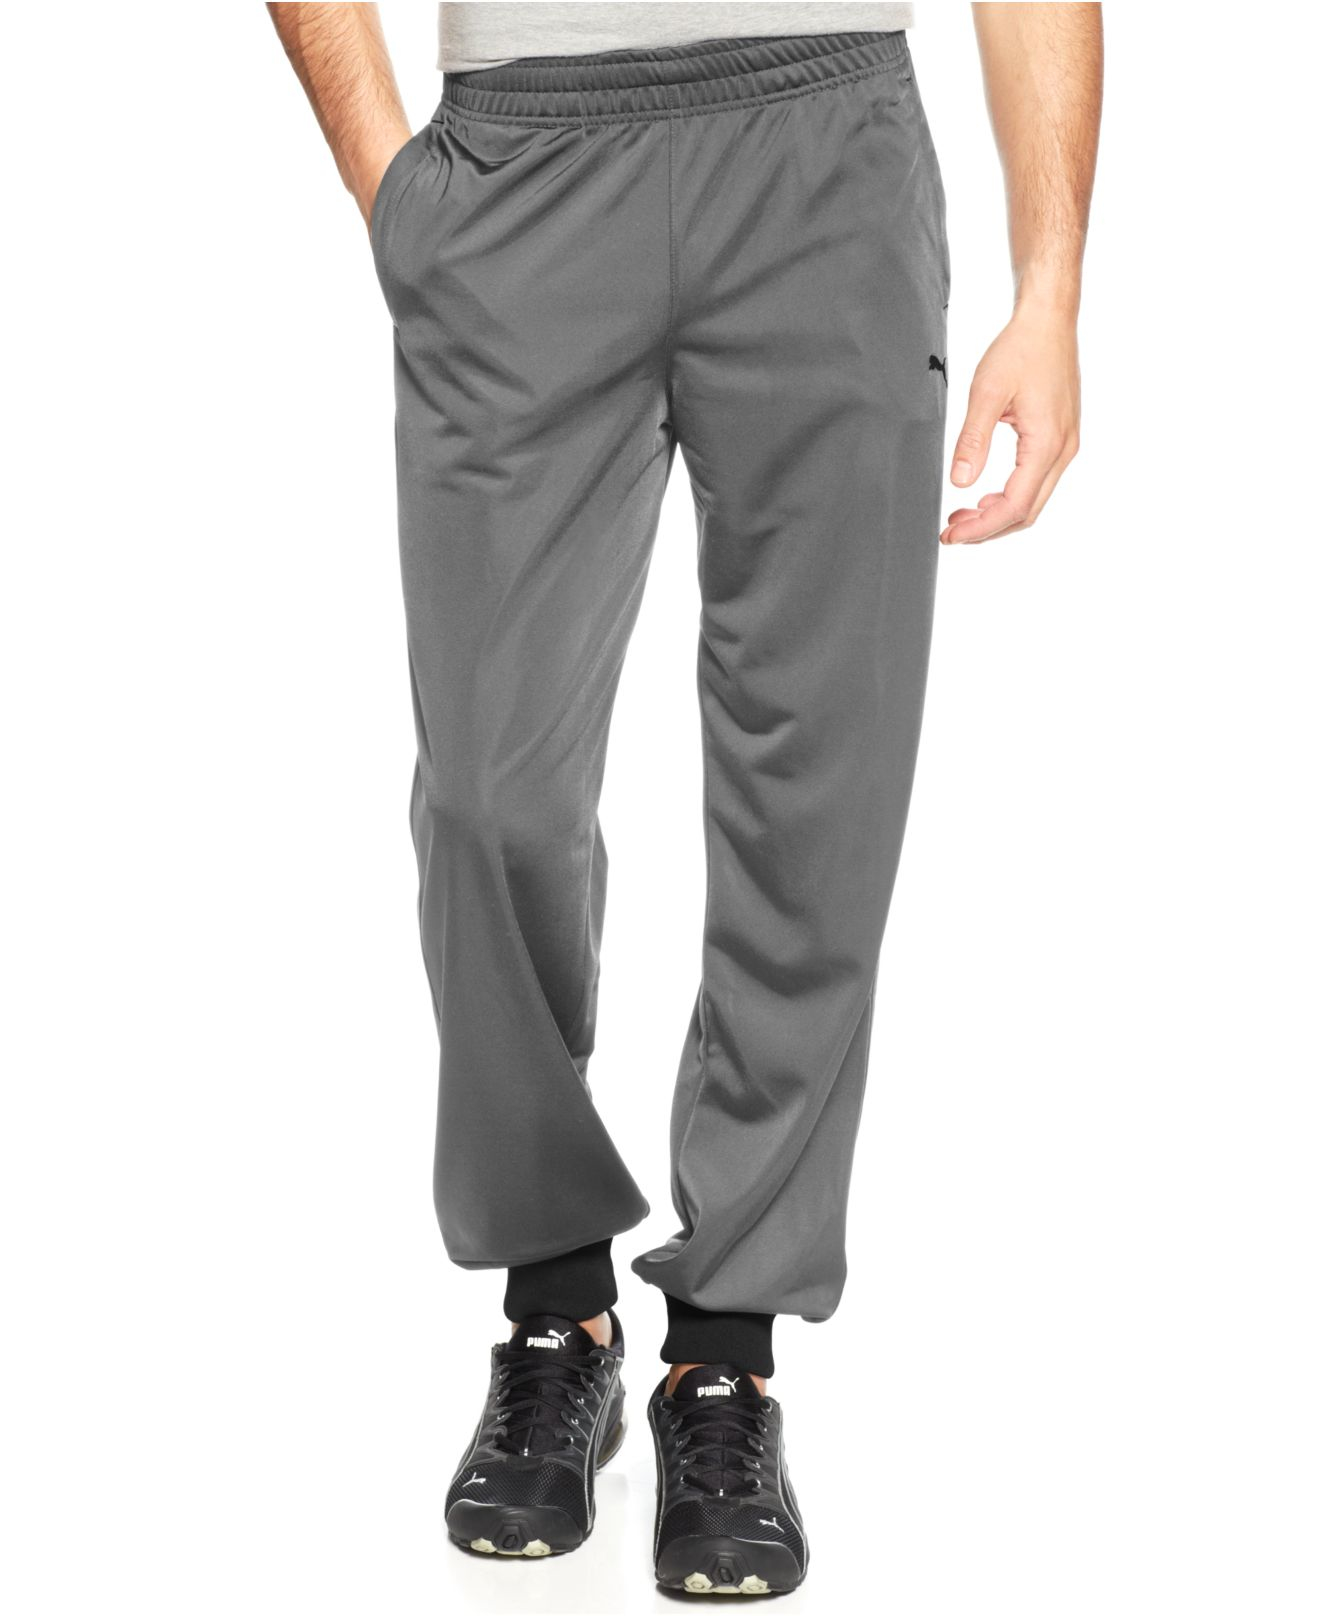 Mens Thermafit Jogger Cuffed Sweat Pants Black. from $ 31 75 Prime. 5 out of 5 stars 1. Champion. Men's Heritage Polo, from $ 14 95 Prime. out of 5 stars 3. PULI. Women's Drawstring Sweatpants with Pockets Cuff Sport Workout Jogger Leggings $ 24 99 Prime. out of 5 stars NIKE. Sportswear Men's Club Joggers.